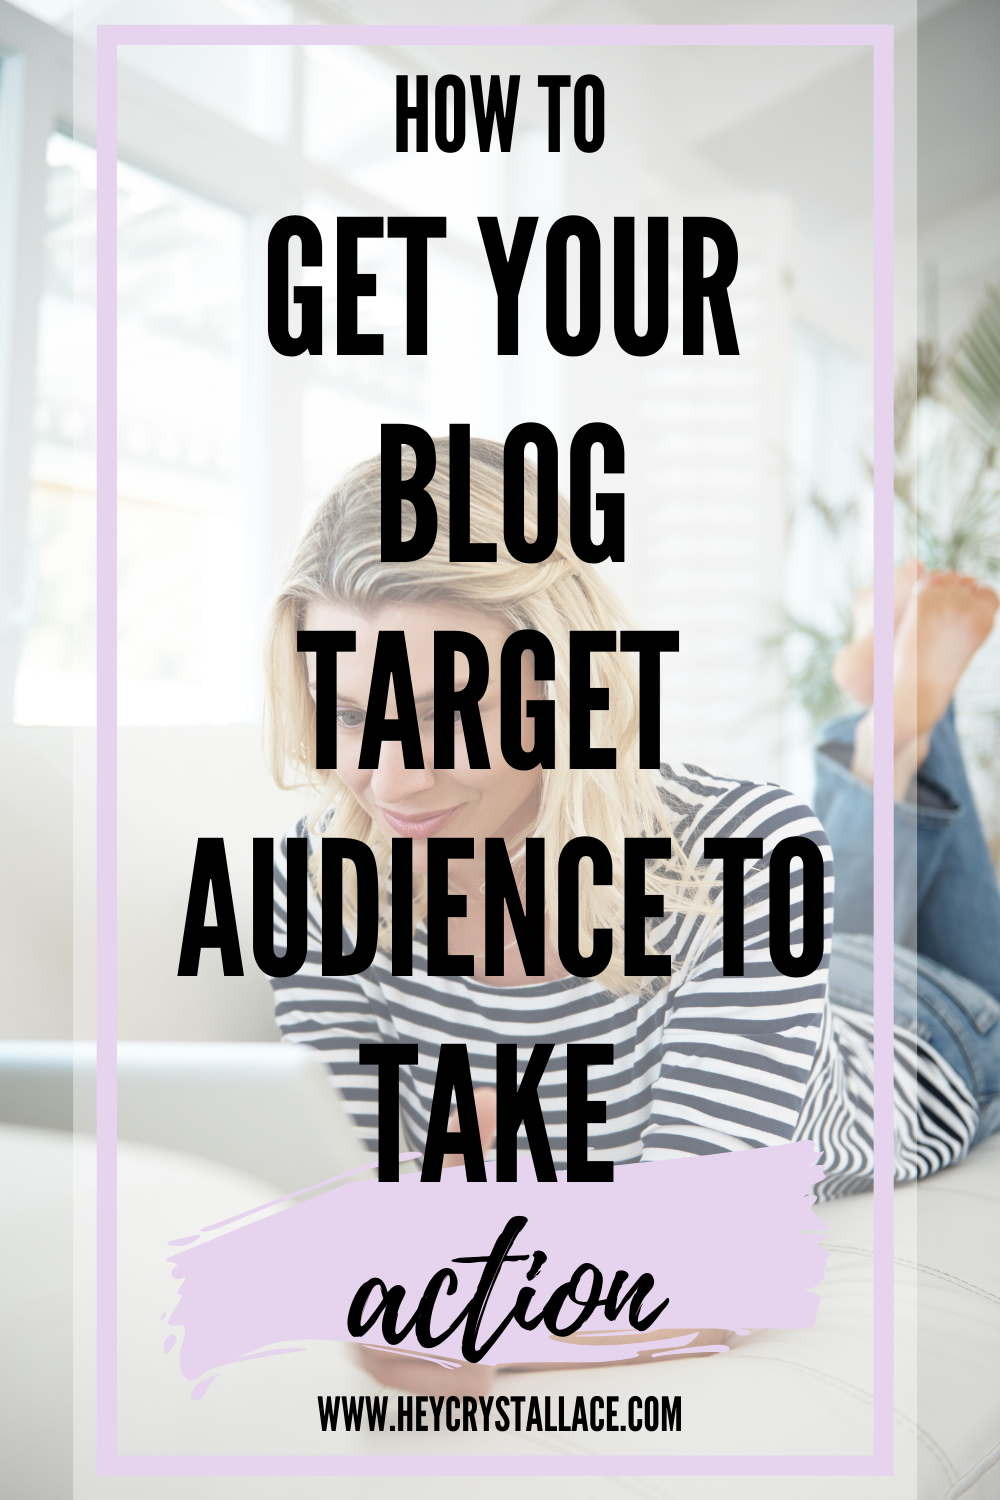 How to Get Your Blog Target Audience to Take More Action With These 6 Easy Steps